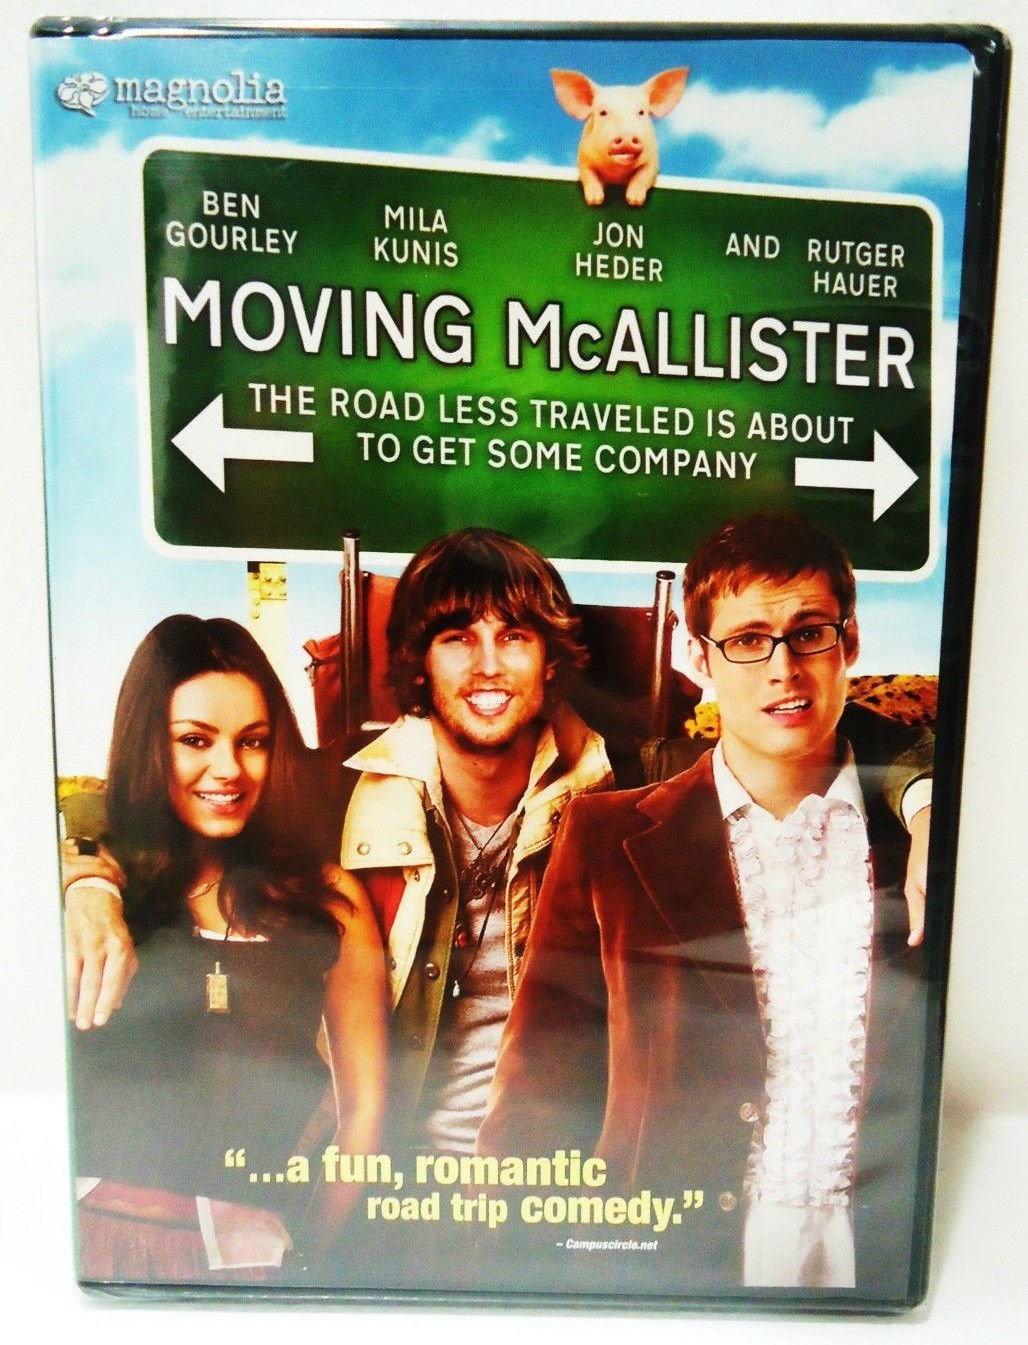 MOVING McALLISTER - DVD - MILA KUNIS - BRAND NEW - ROMANTIC - COMEDY - MOVIE